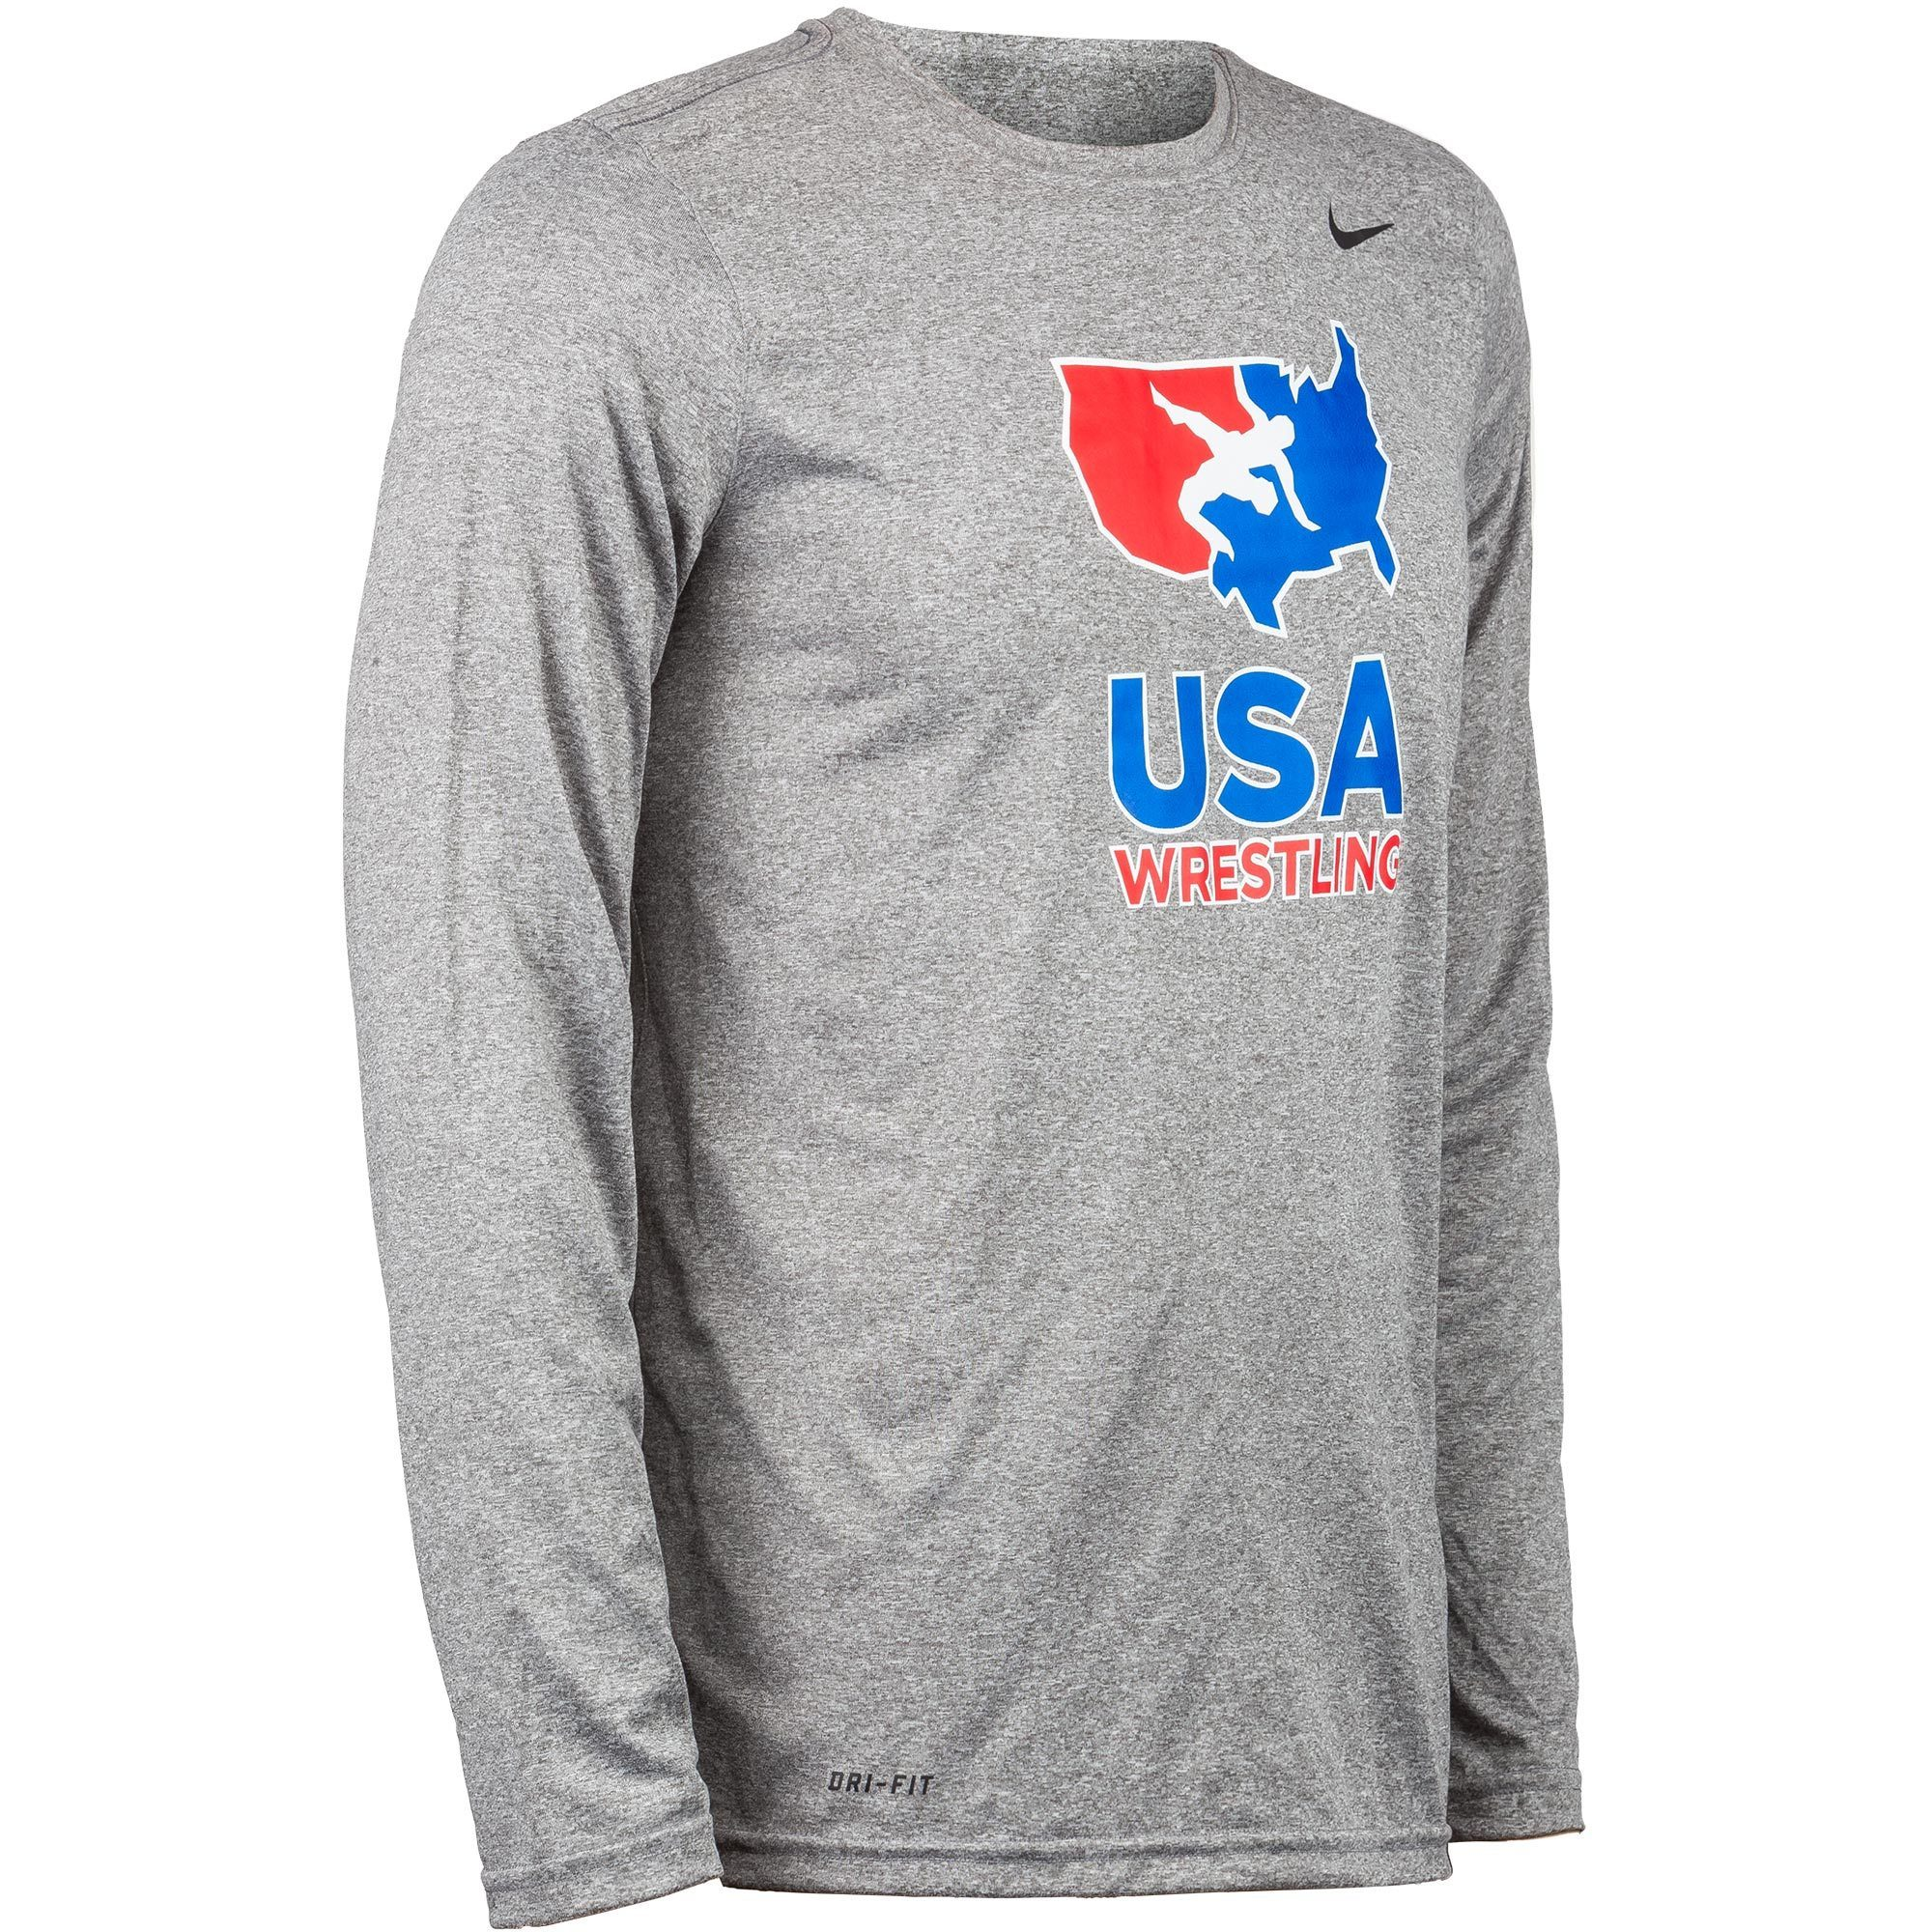 823f8d5a6 Nike USAWrestling Training Long Sleeve Tee Apparel | WrestlingMart ...